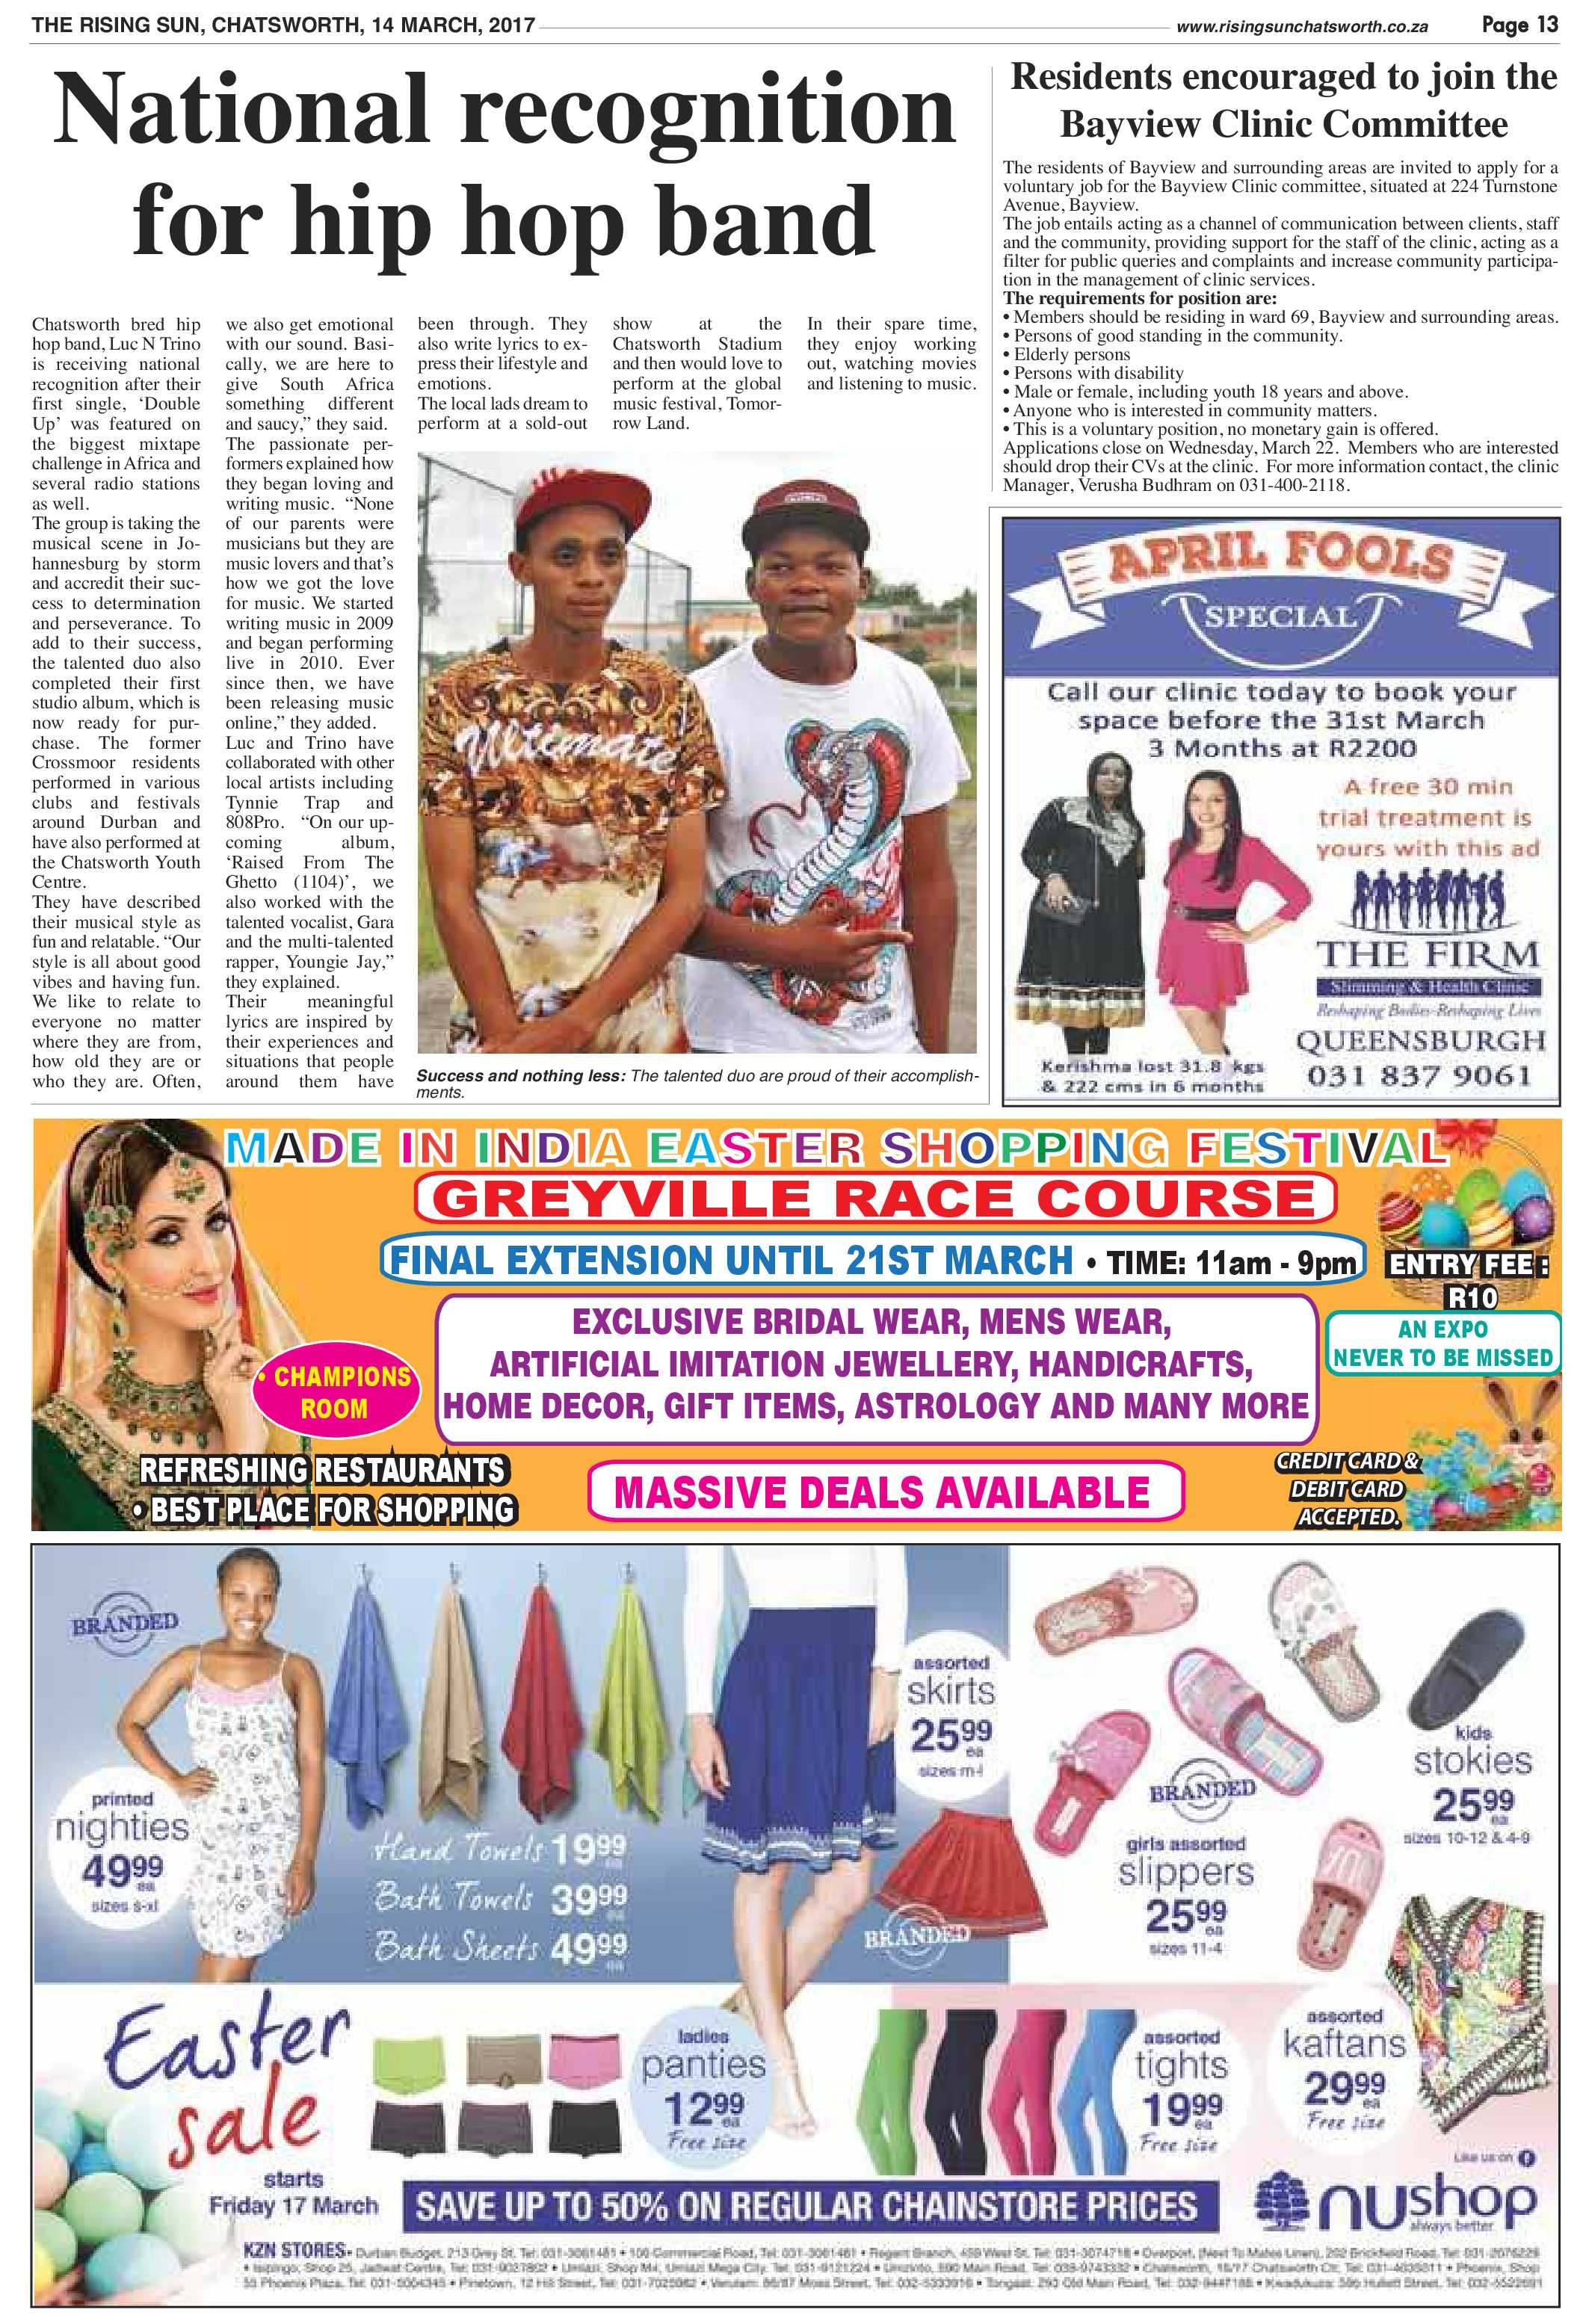 chatsworth-police-slammed-epapers-page-17